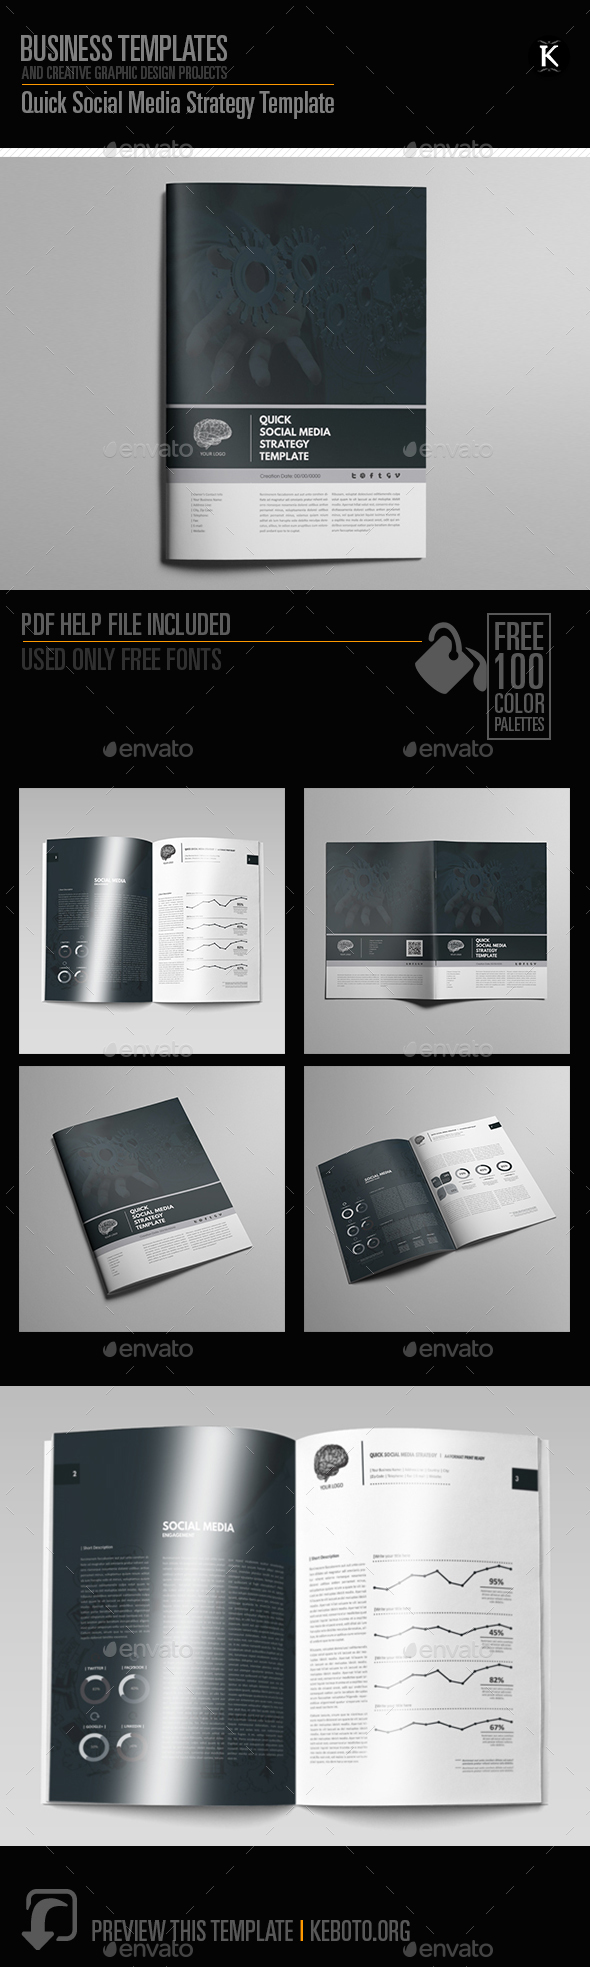 Quick Social Media Strategy Template - Miscellaneous Print Templates